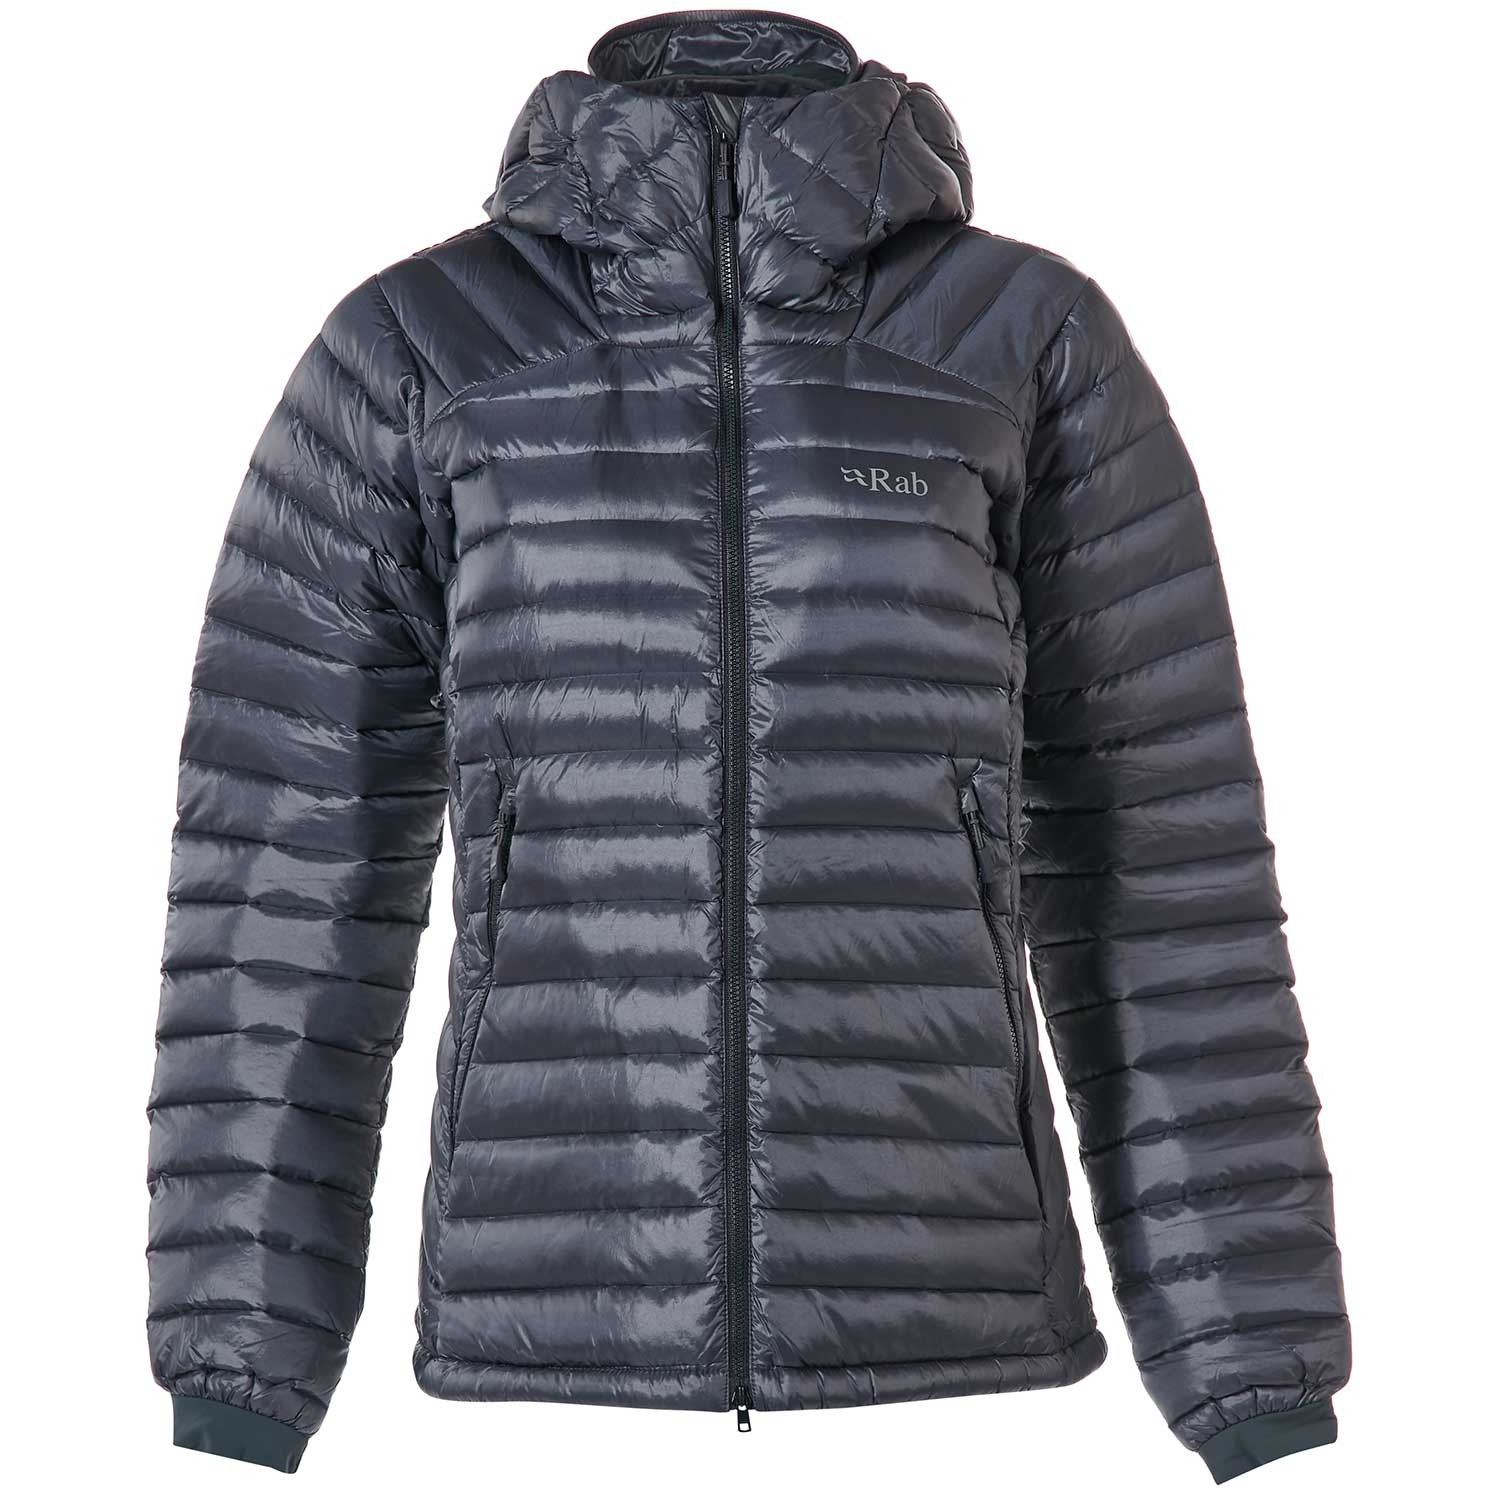 Rab Women's Microlight Summit Down Jacket - Steel